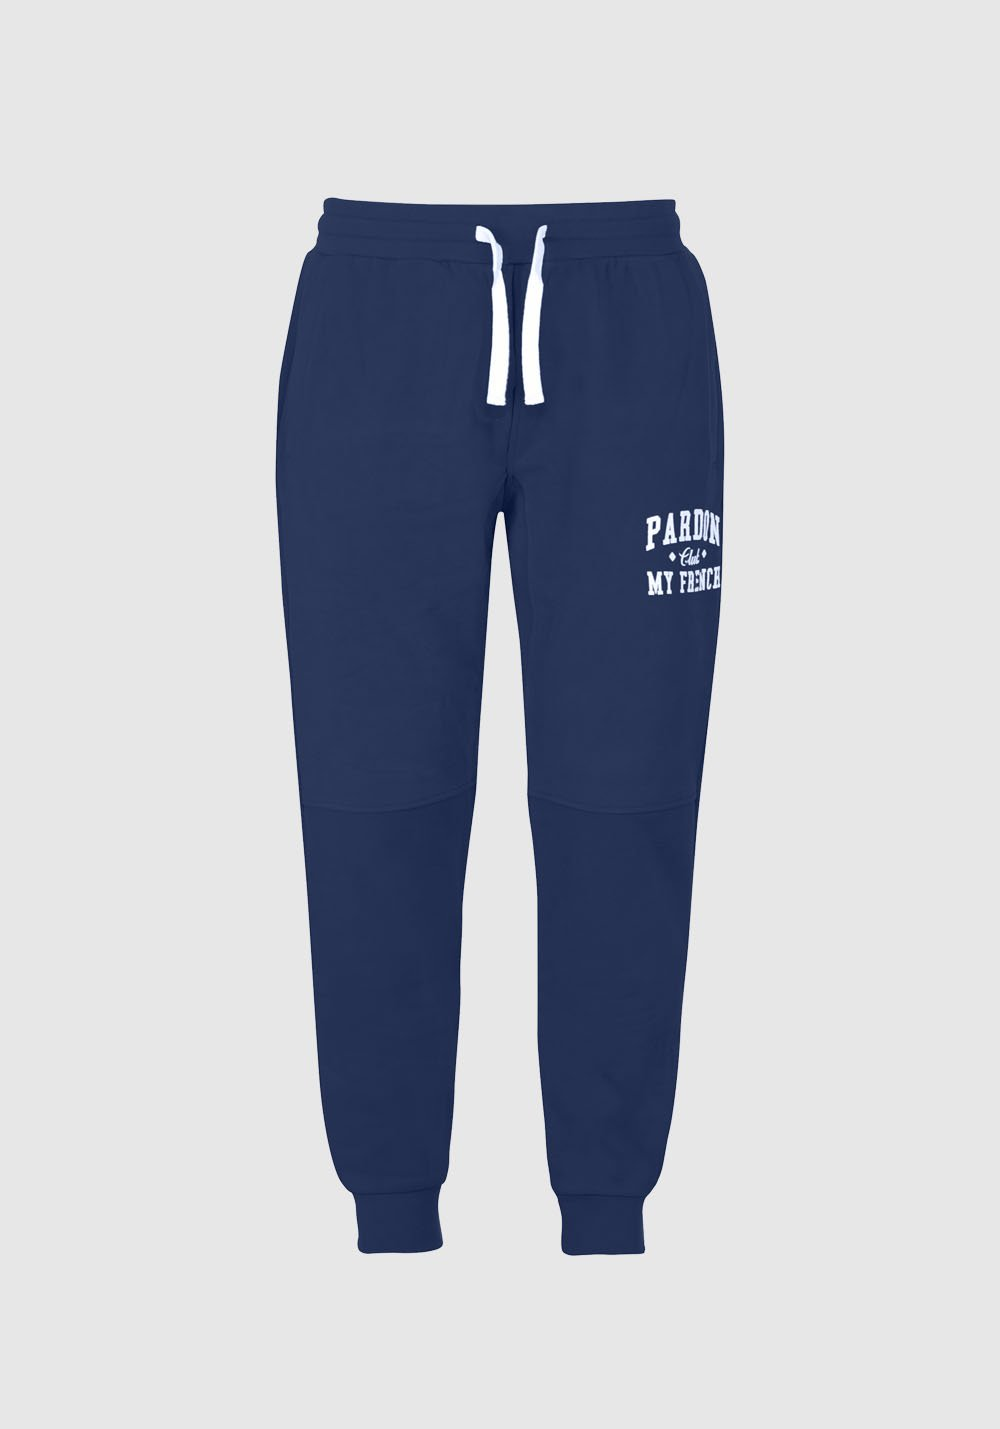 MY FRENCH CLUB FORGIVENESS TROUSERS NAVY BLUE